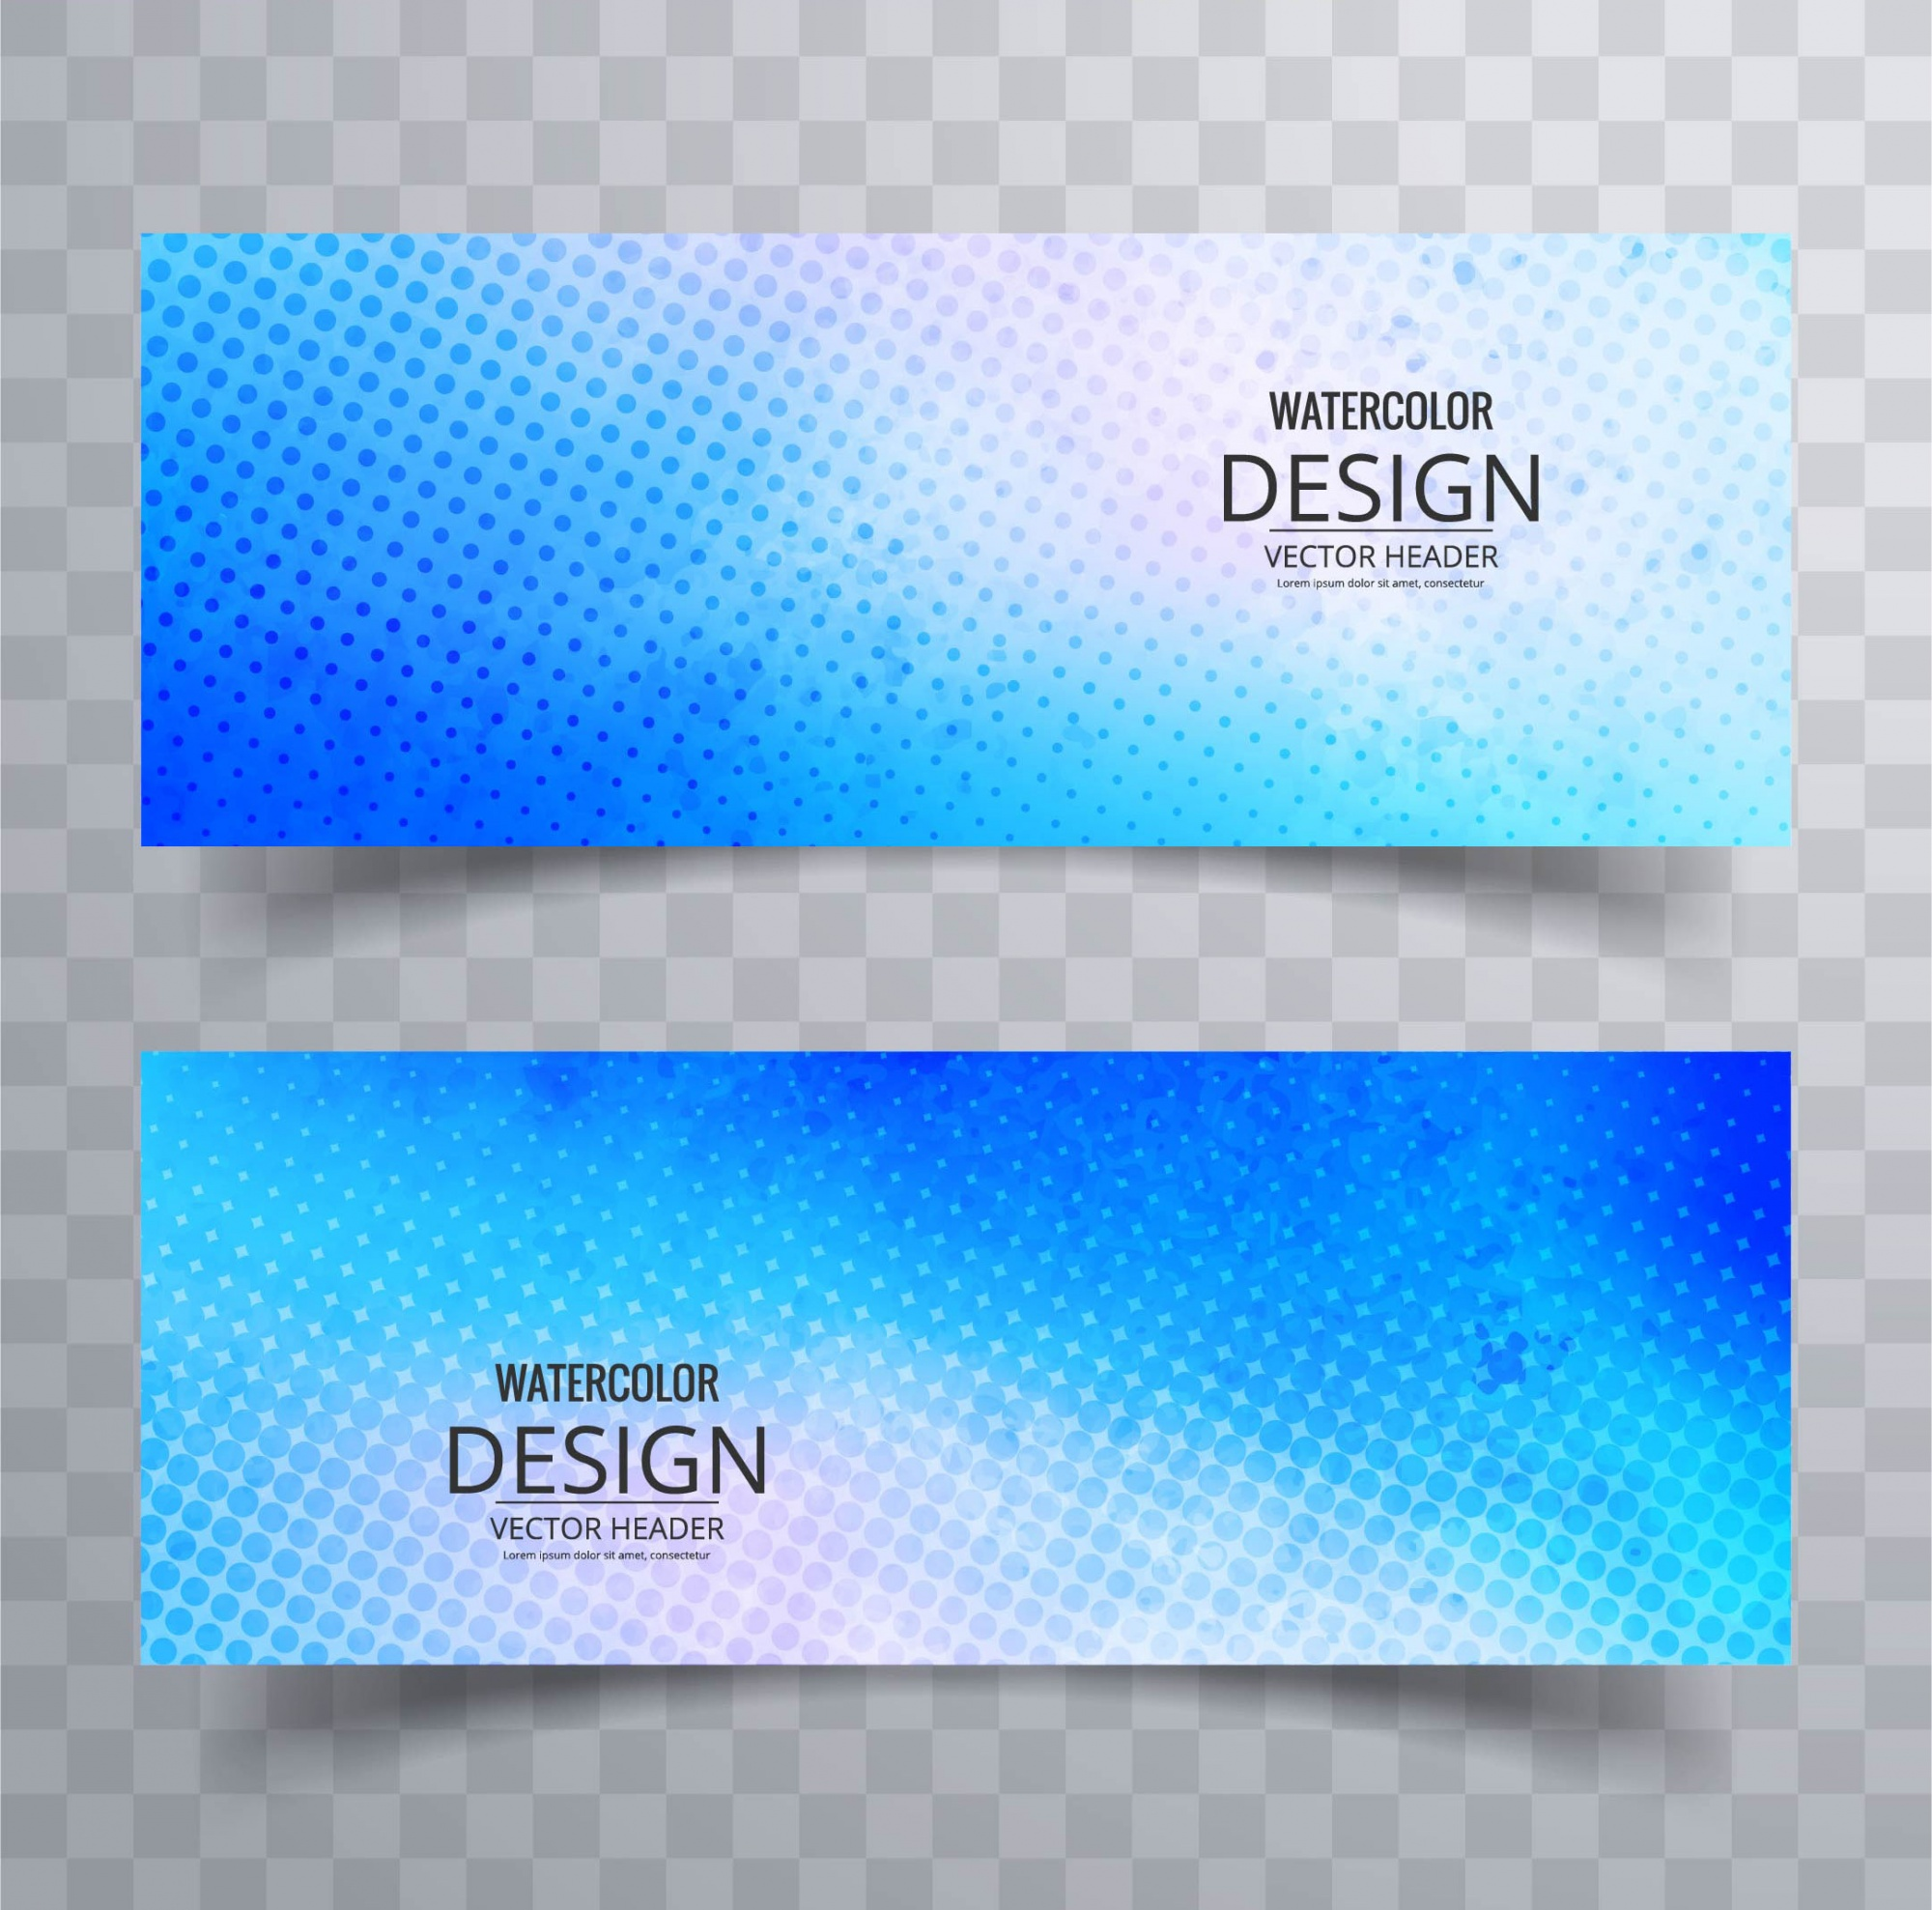 Two grunge banners with halftone dots